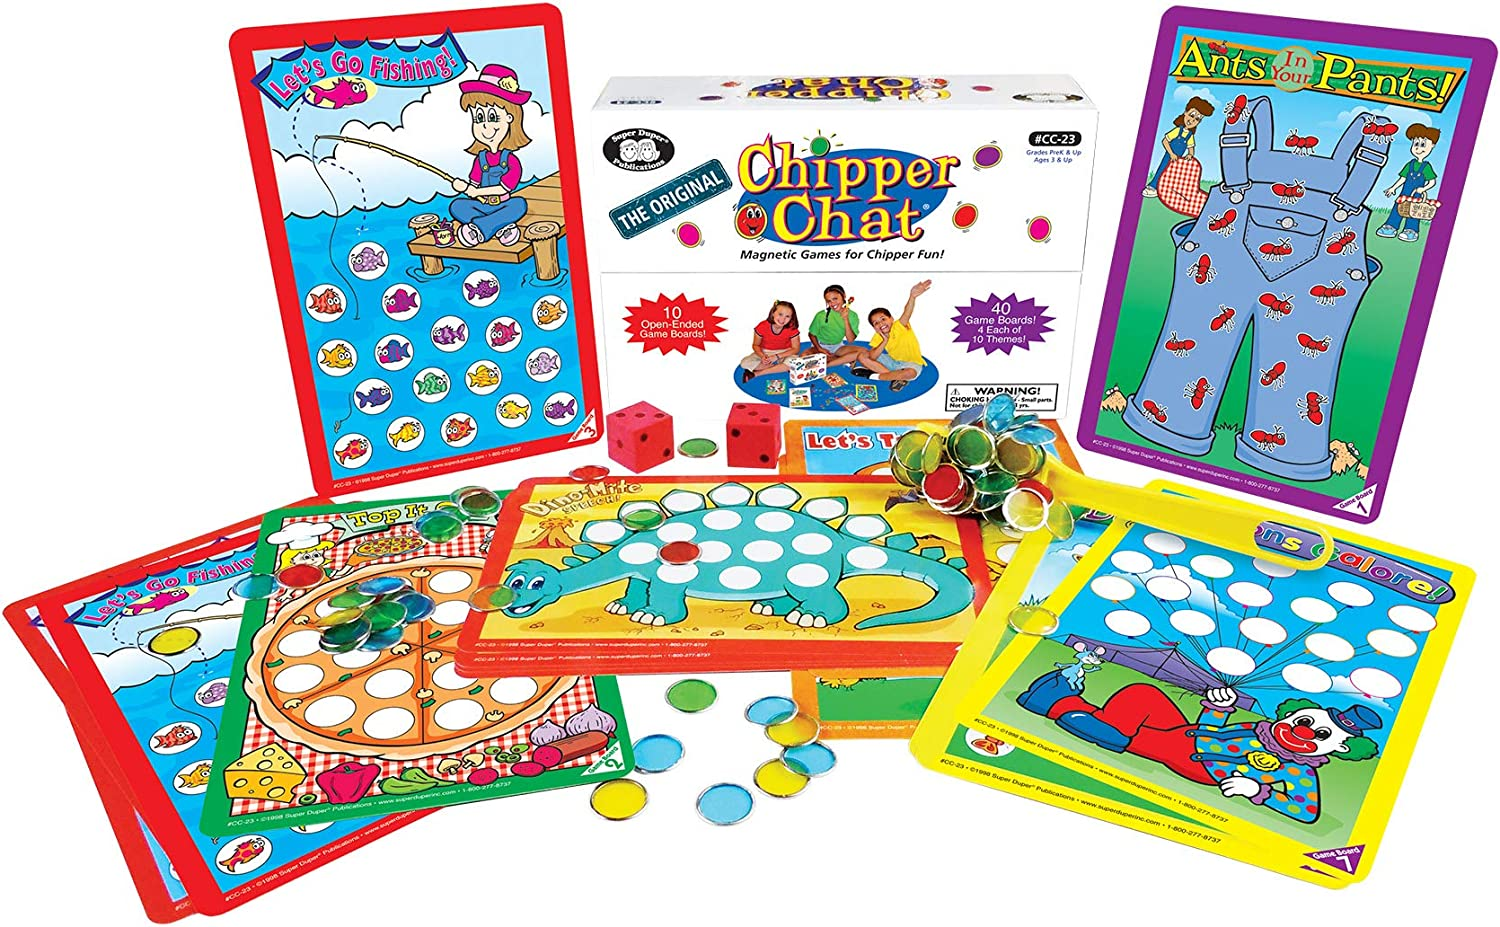 1586501747 Super Duper Publications The Original Chipper Chat Magnetic Open-Ended Games for Speech and Language Educational Learning Resource for Children 81eJbMIiQRL